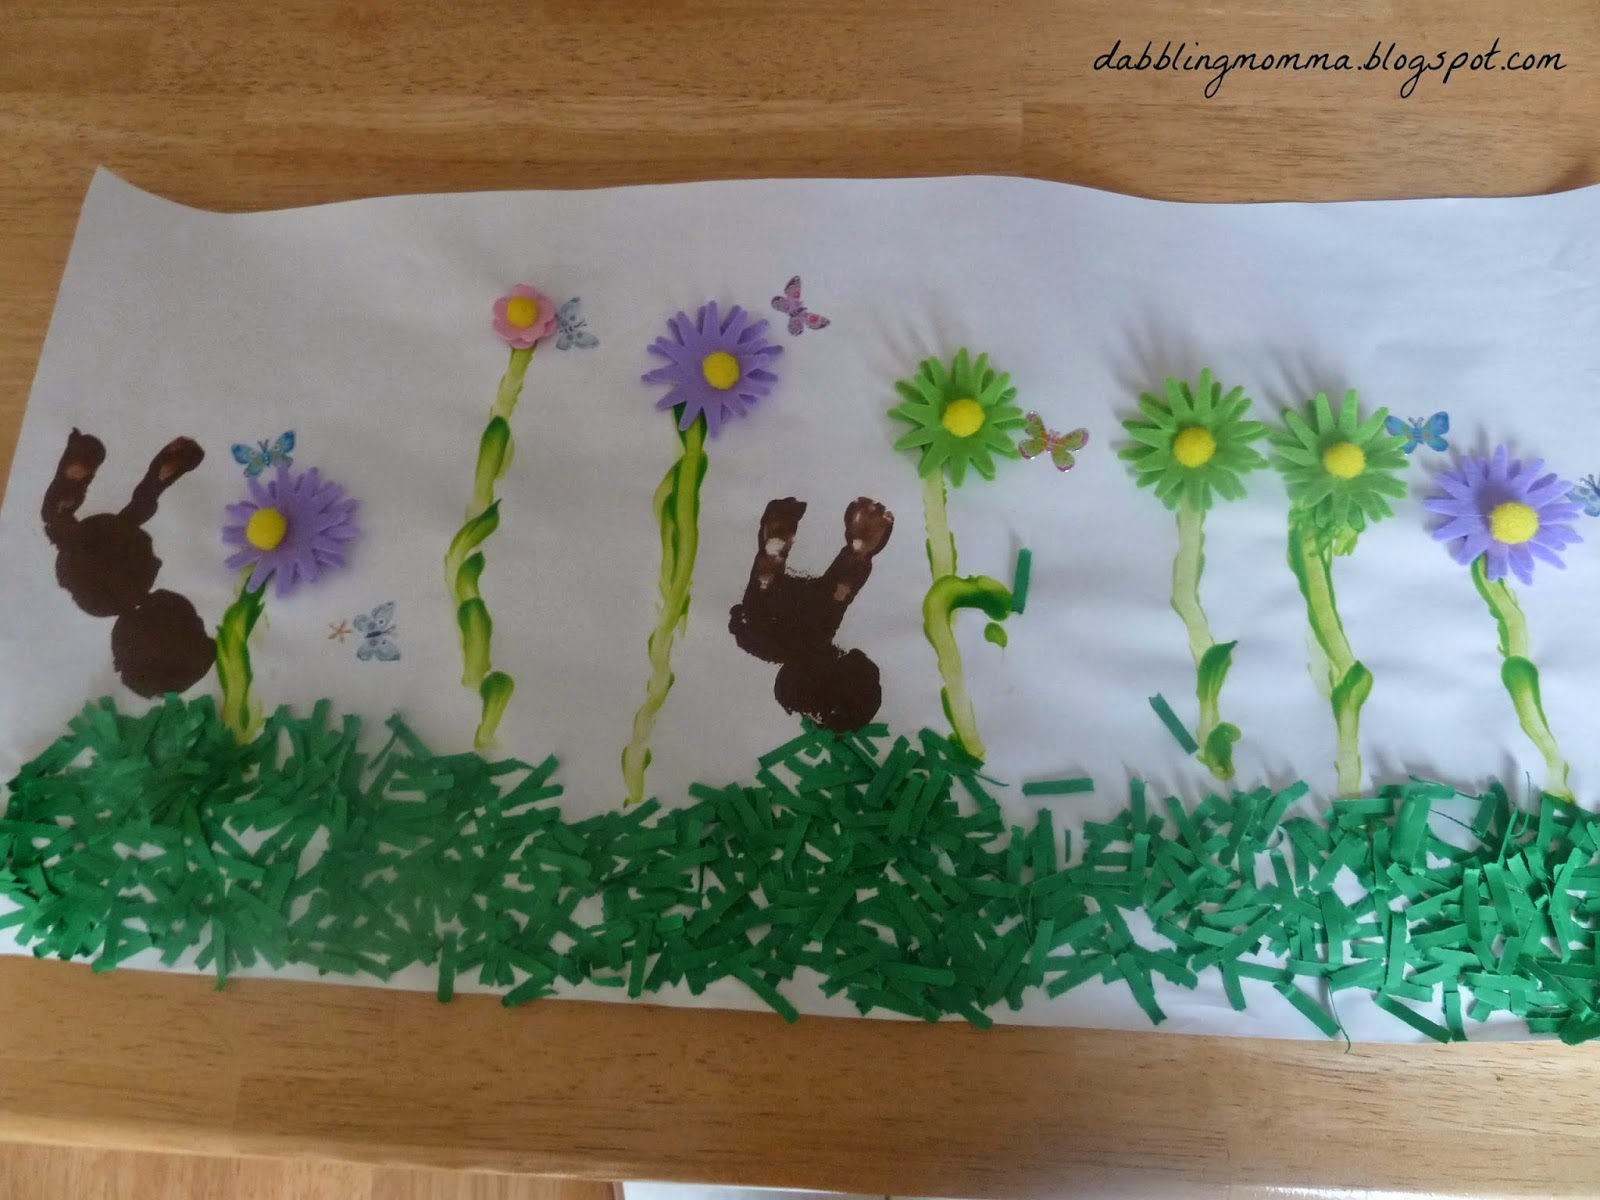 Spring Art with 3D flowers and grass